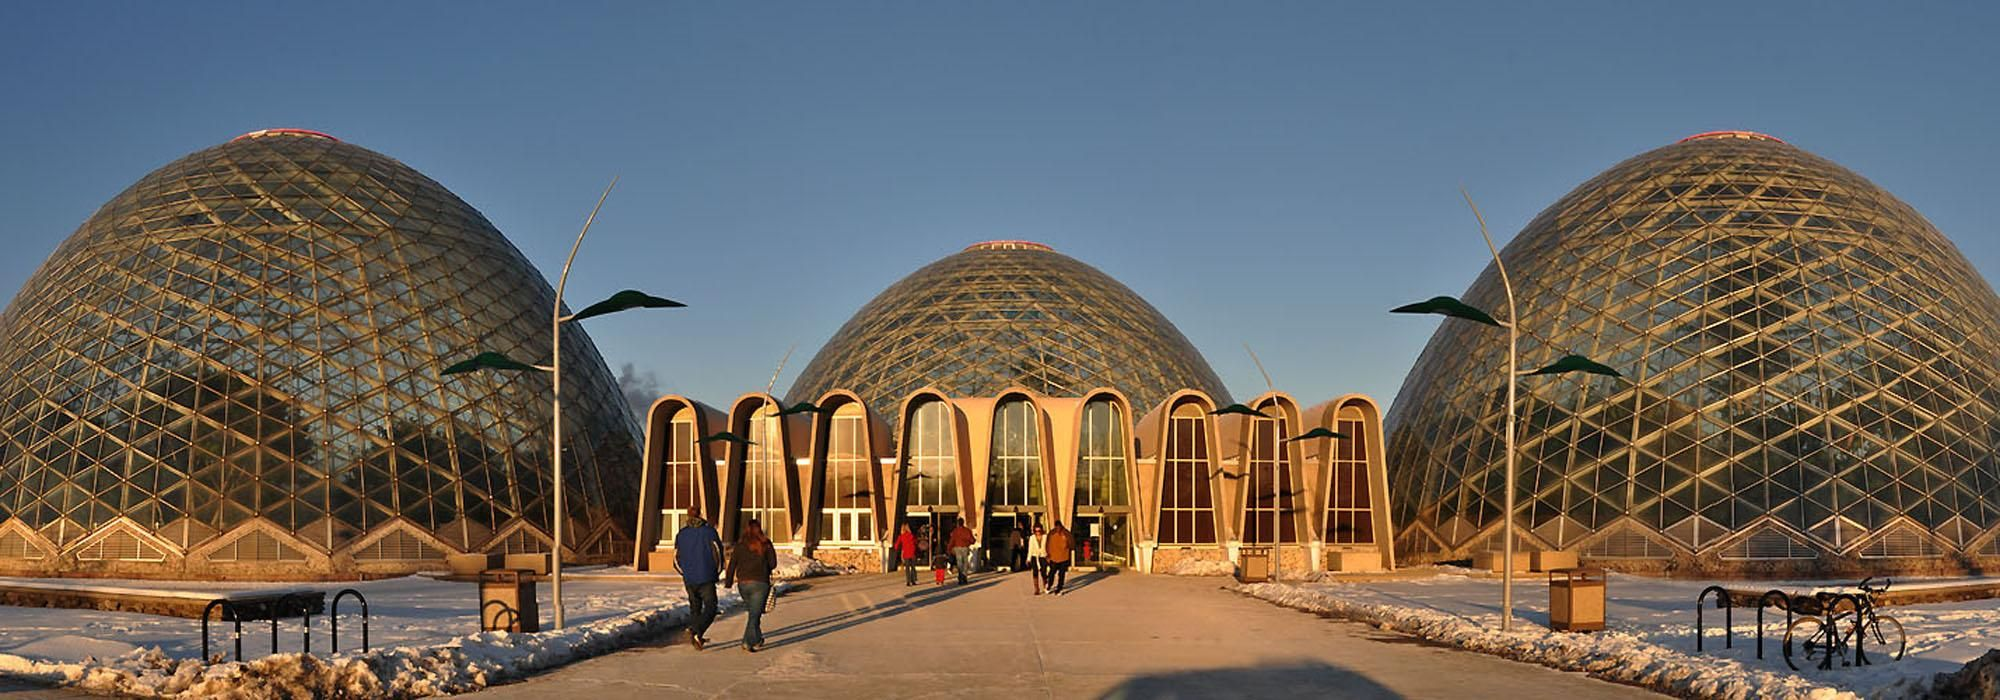 Milwaukee_MitchellParkDomes_hero_01_mapiodotnet.jpg